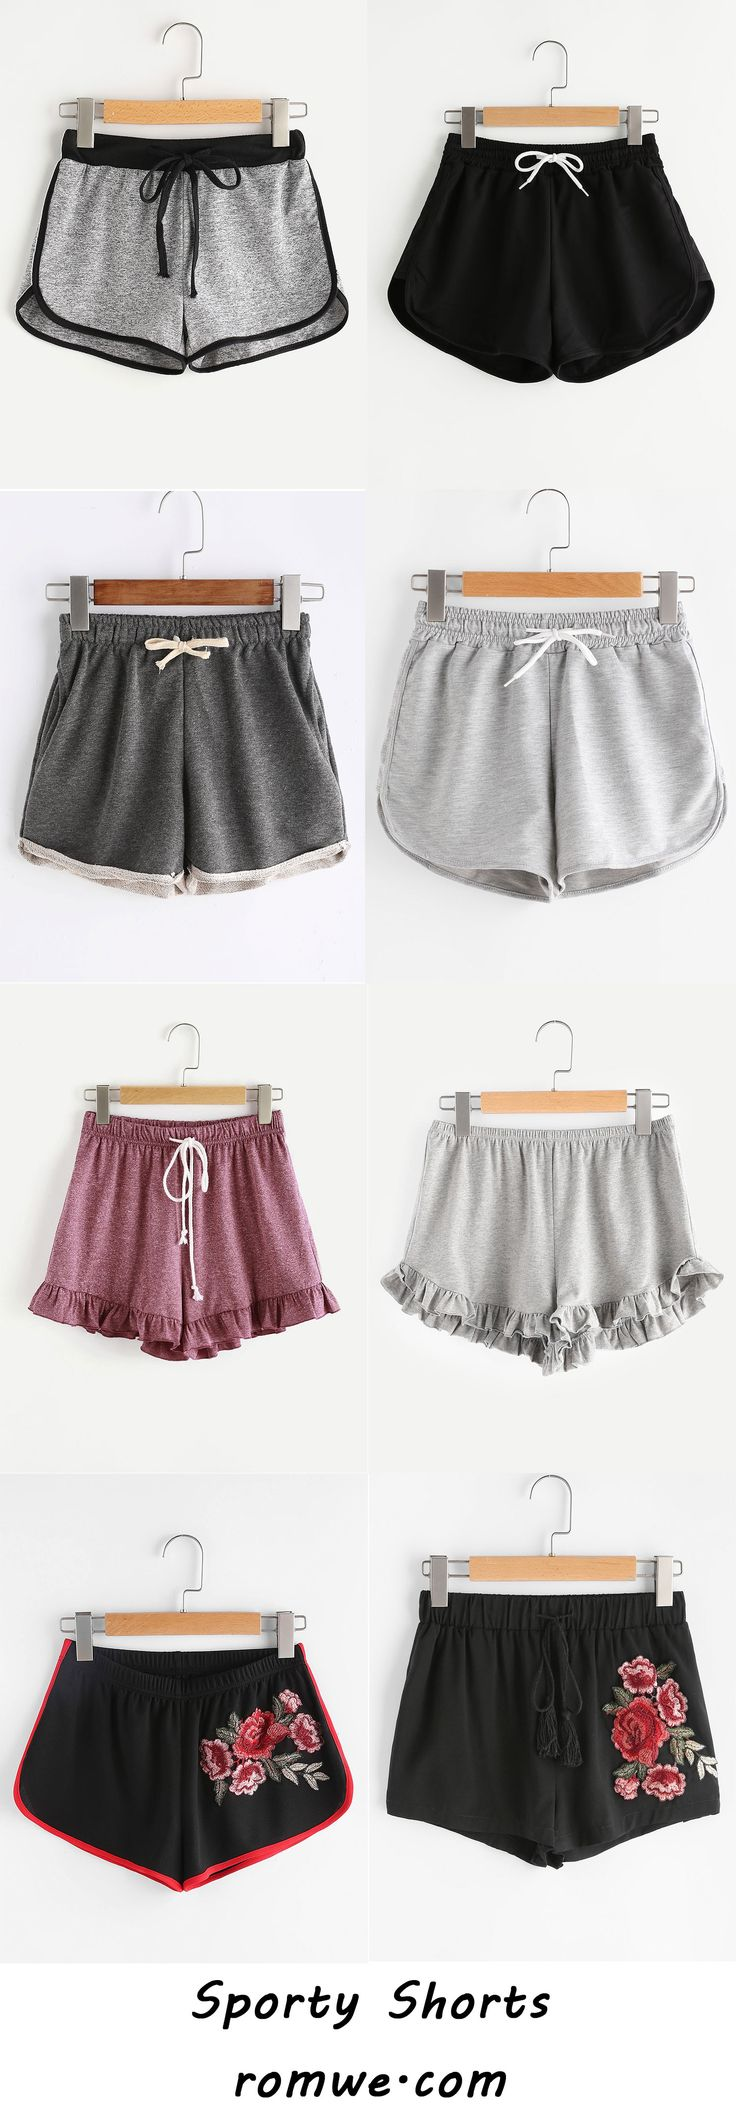 Sporty Shorts with soft material and special design - romwe.com